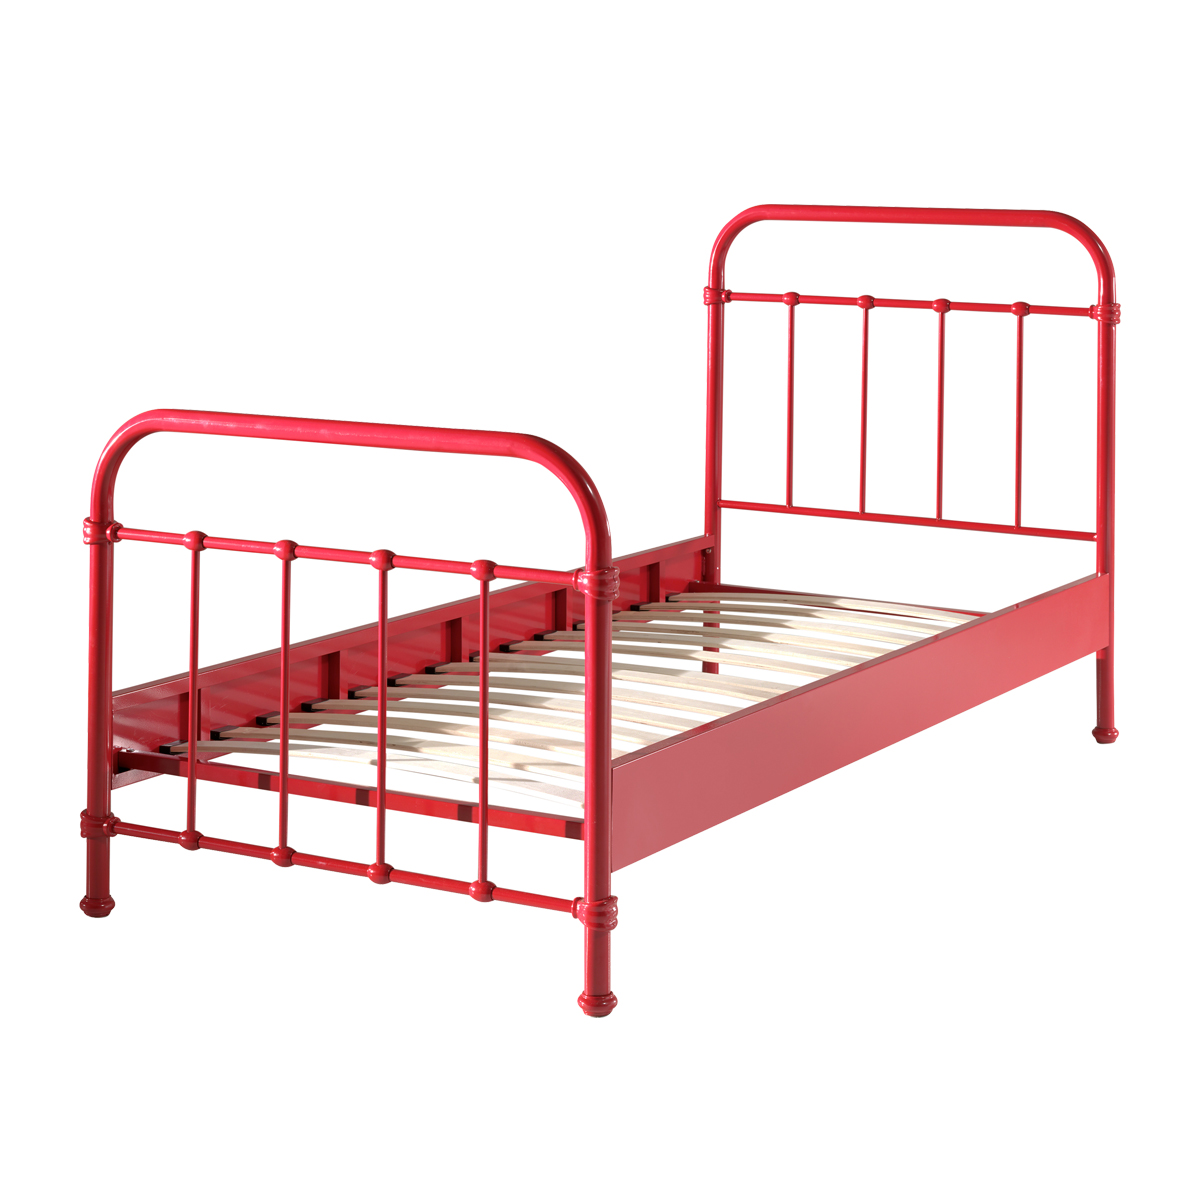 Lit 90x200 Sommier inclus Vipack New York - Rouge